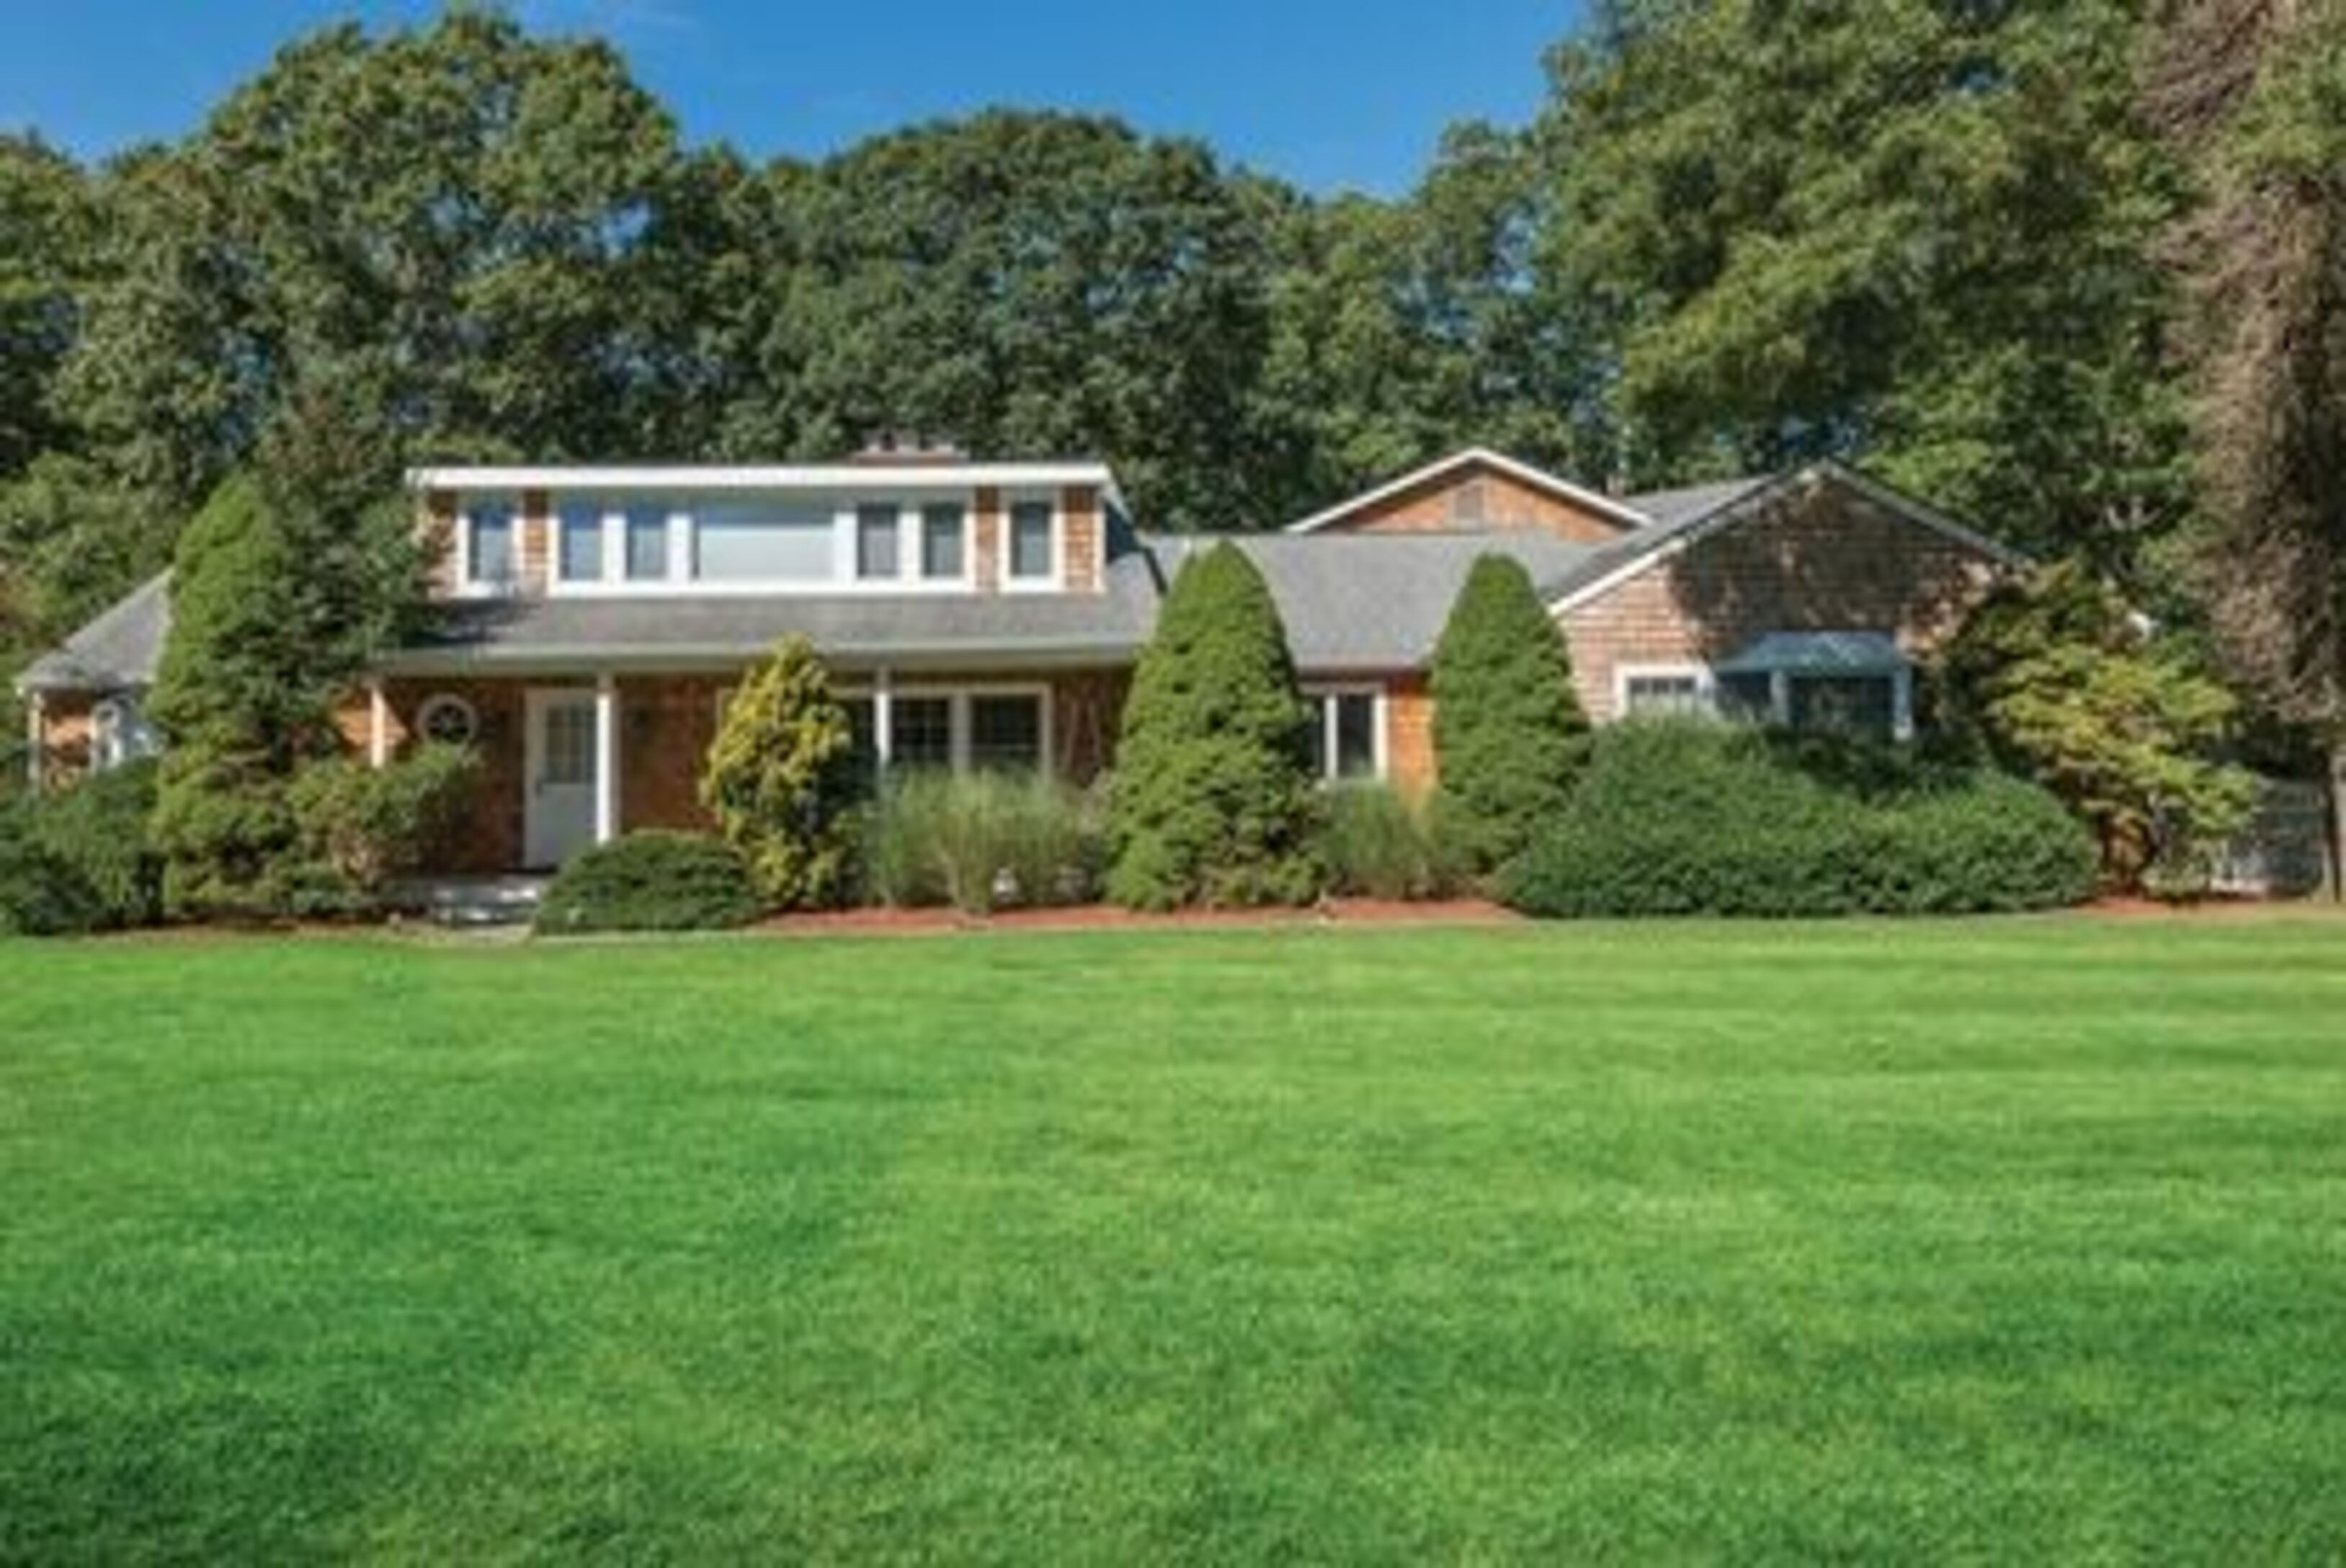 1426 Deerfield Rd - Water Mill North, New York